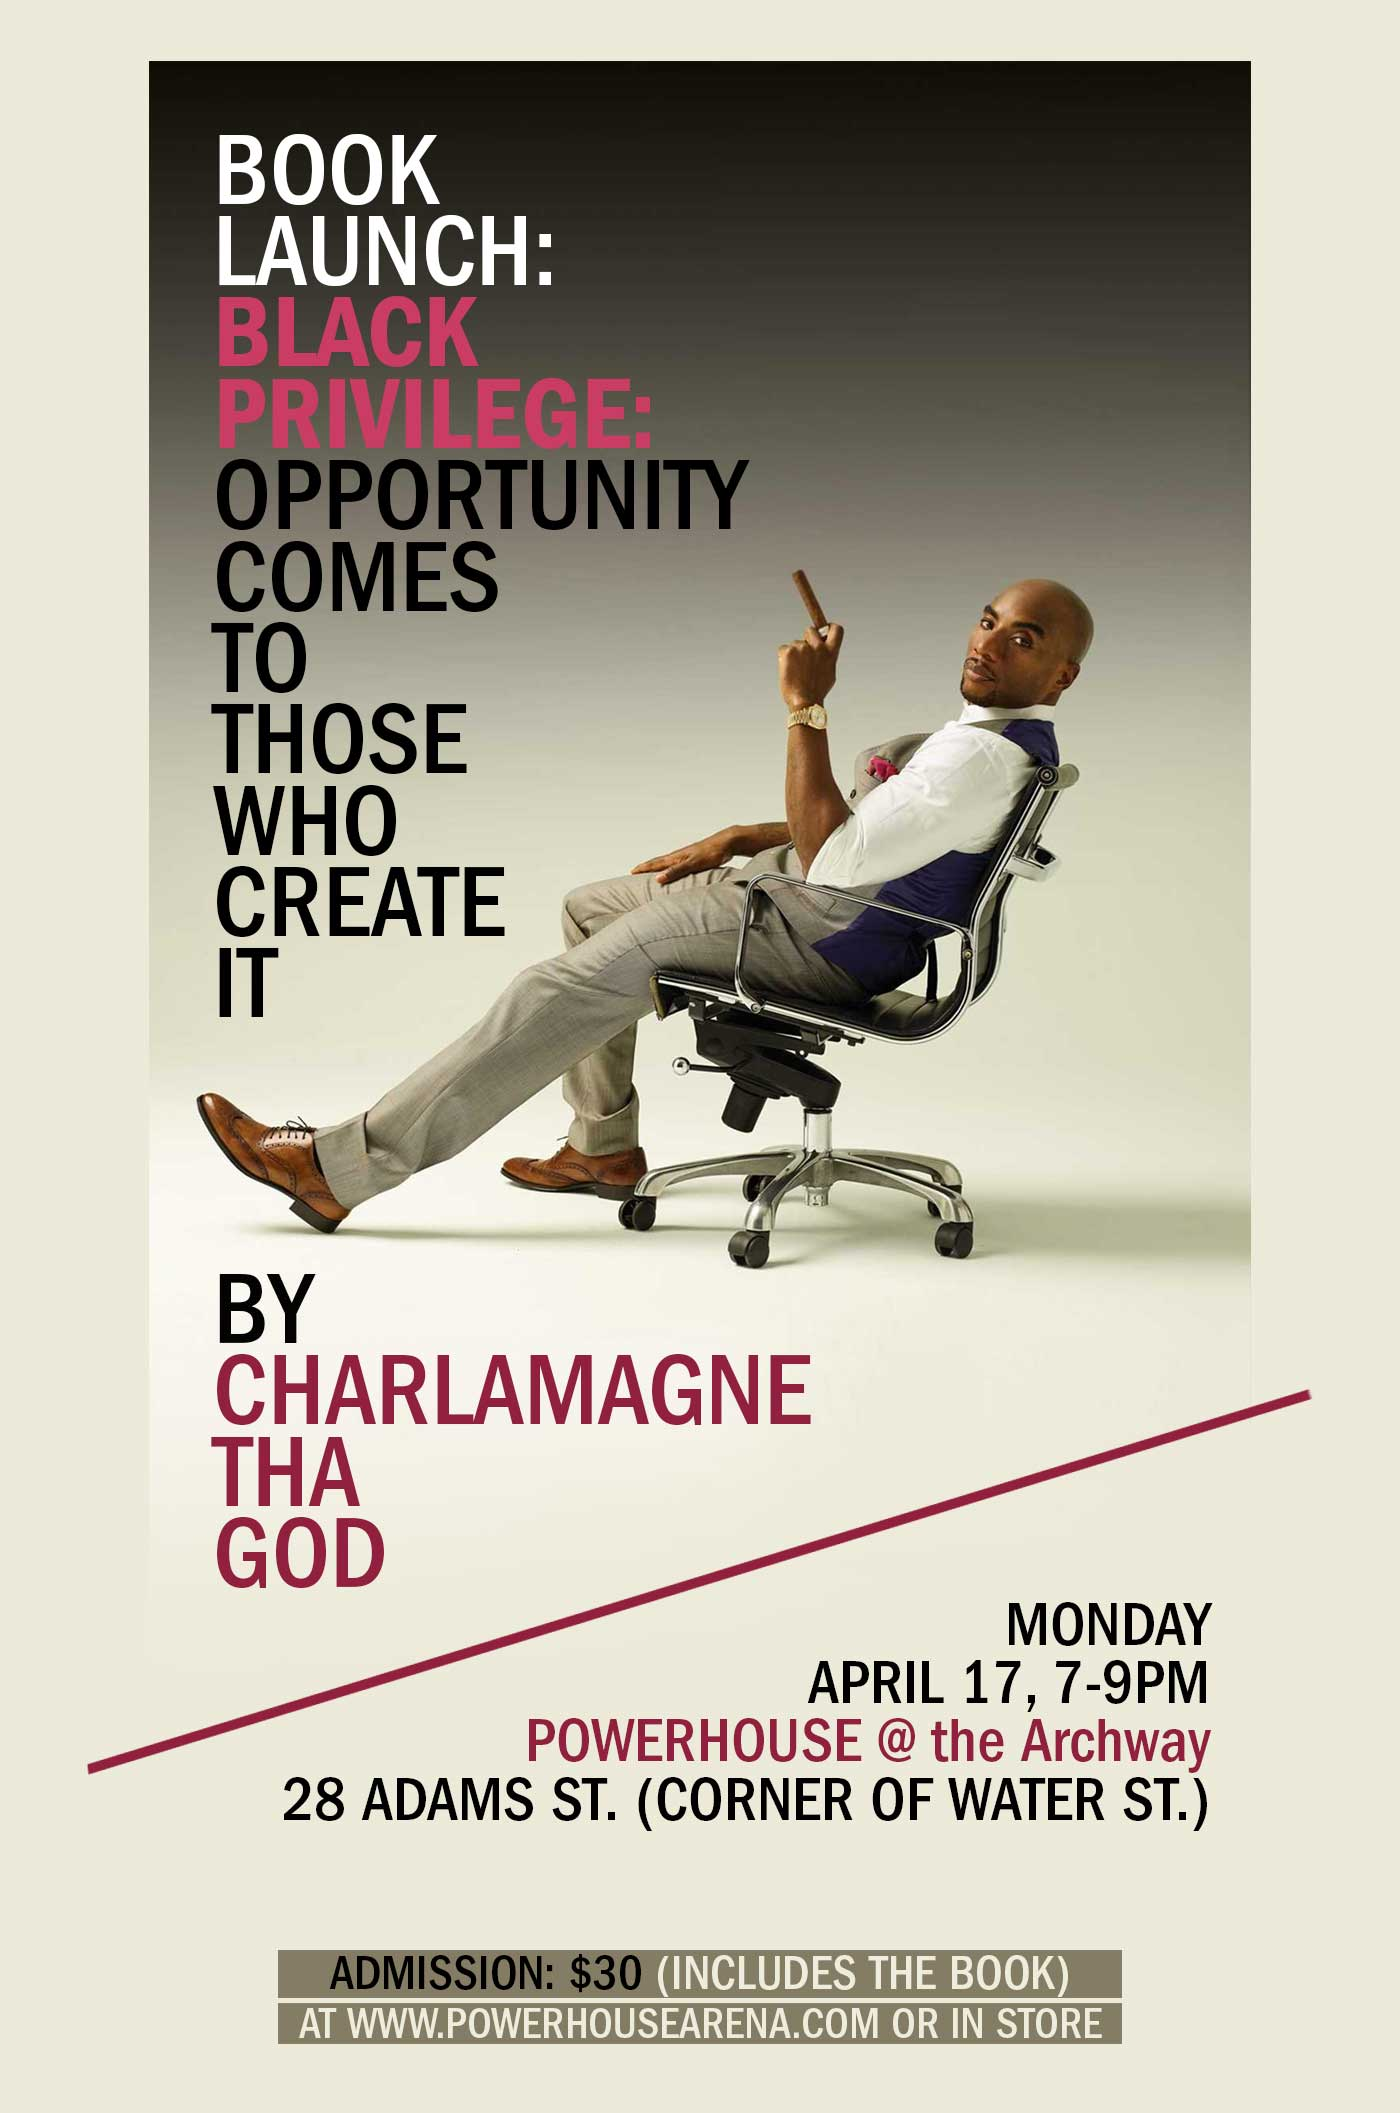 Book Launch: Black Privilege: Opportunity Comes to Those Who Create It by Charlamagne Tha God — in conversation w/ Angela Rye